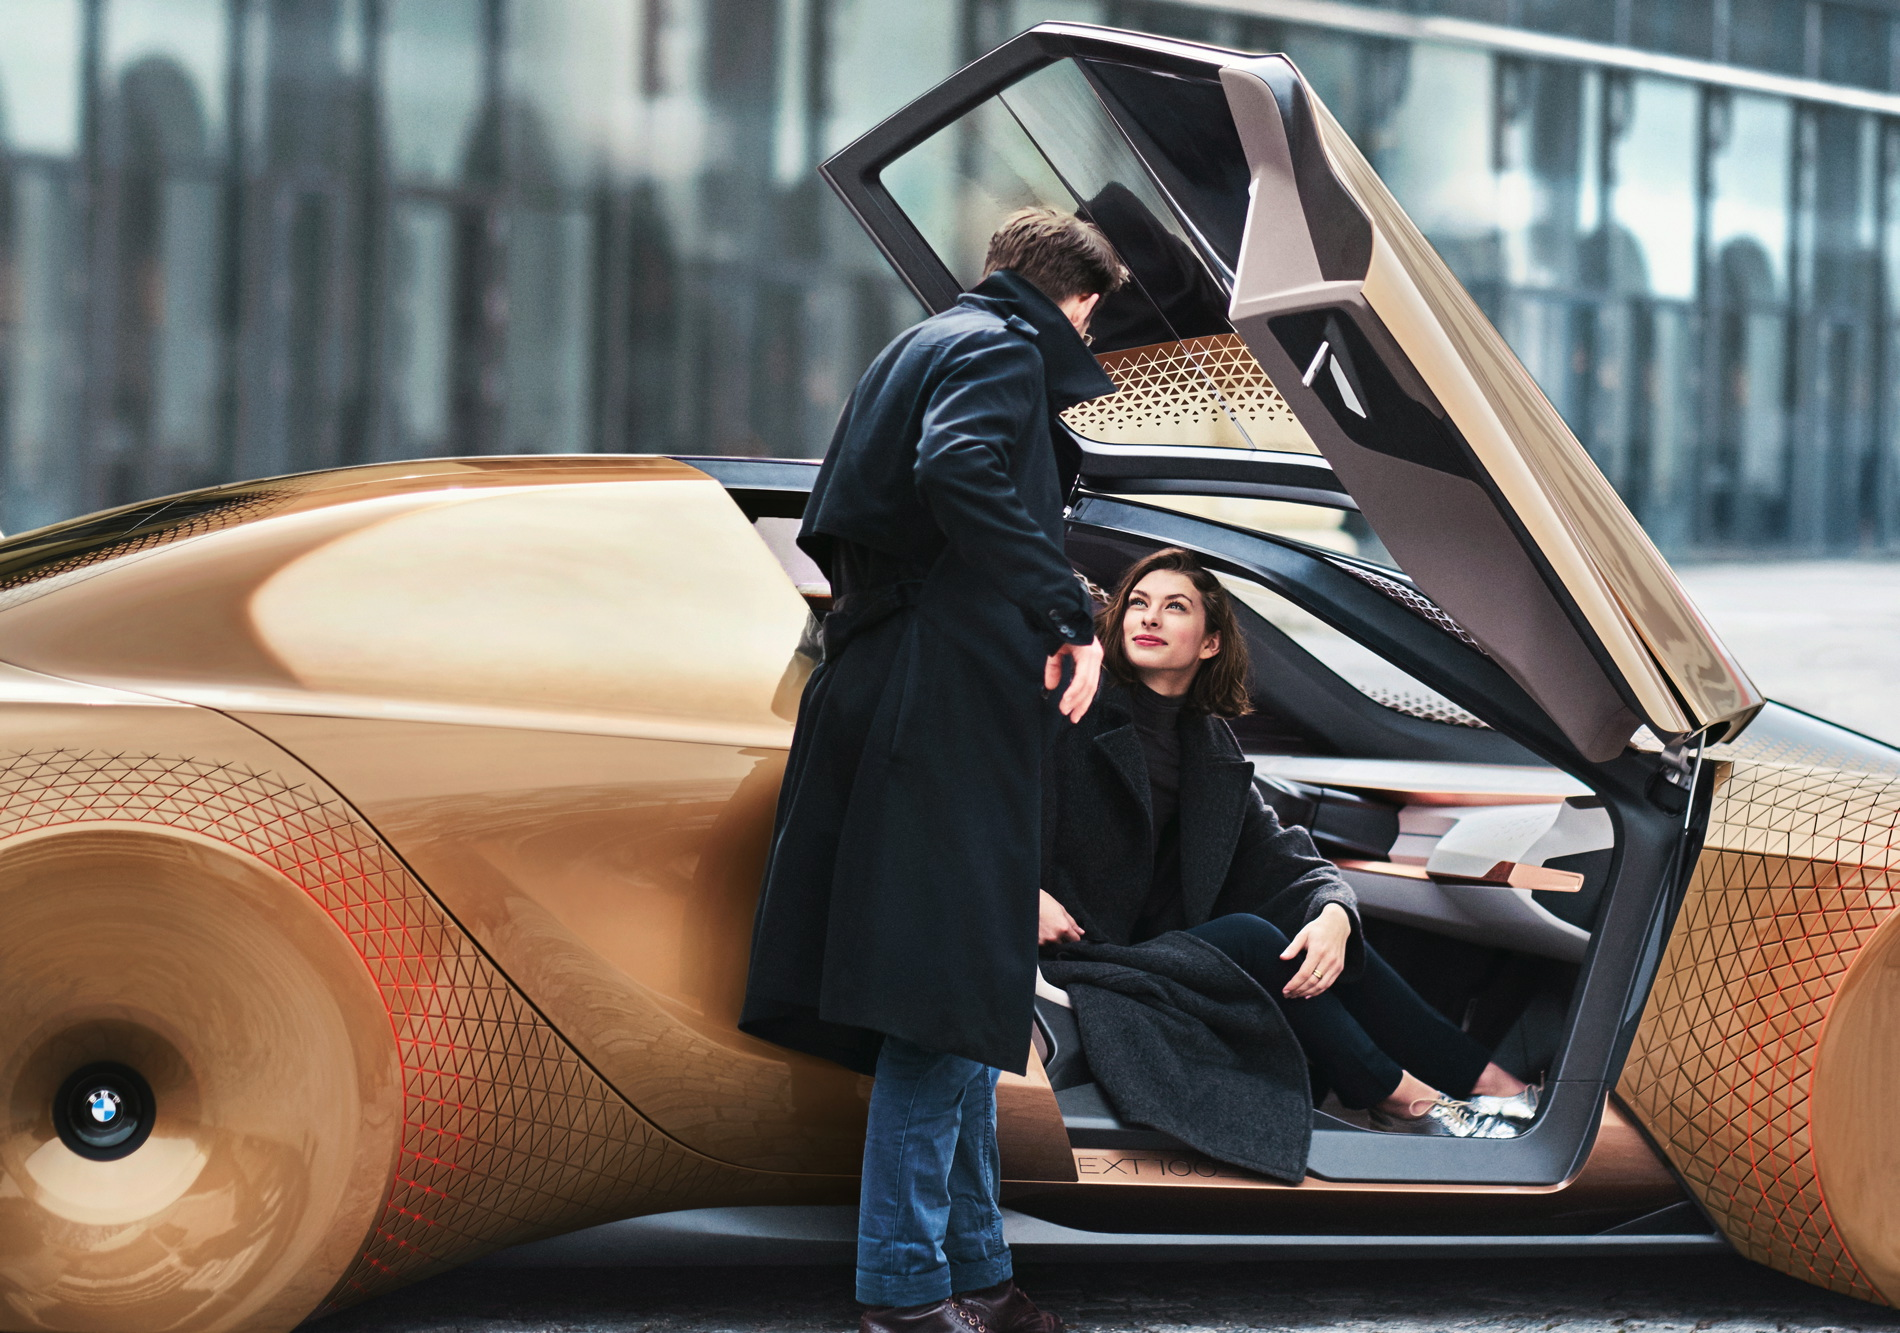 BMW Vision Next 100 images 120